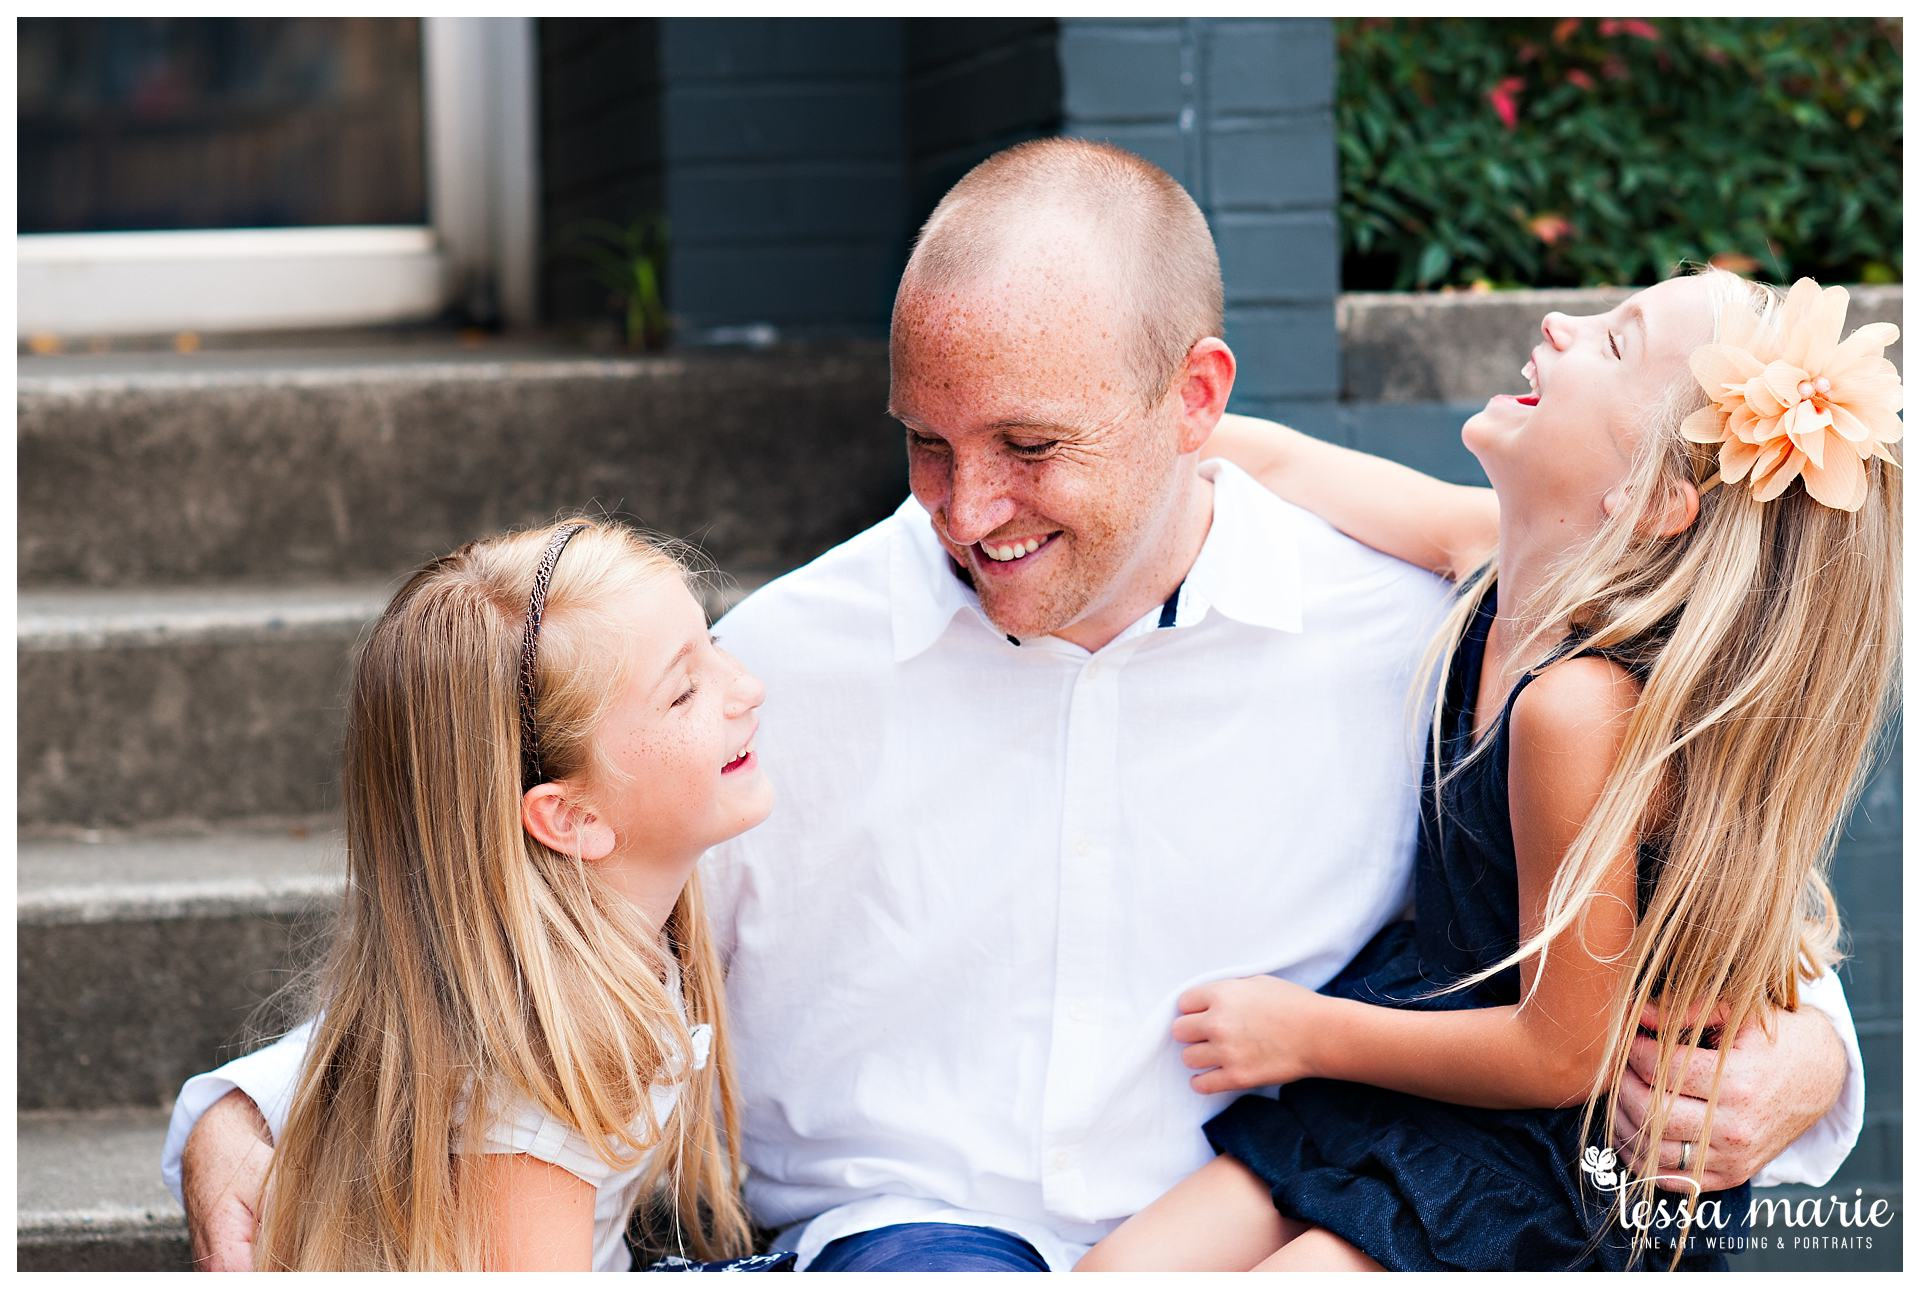 tessa_marie_weddings_legacy_story_focused_wedding_pictures_atlanta_wedding_photographer_family_pictures_portrait_Fine_art_memories_mothers_day_spring_moments_0252